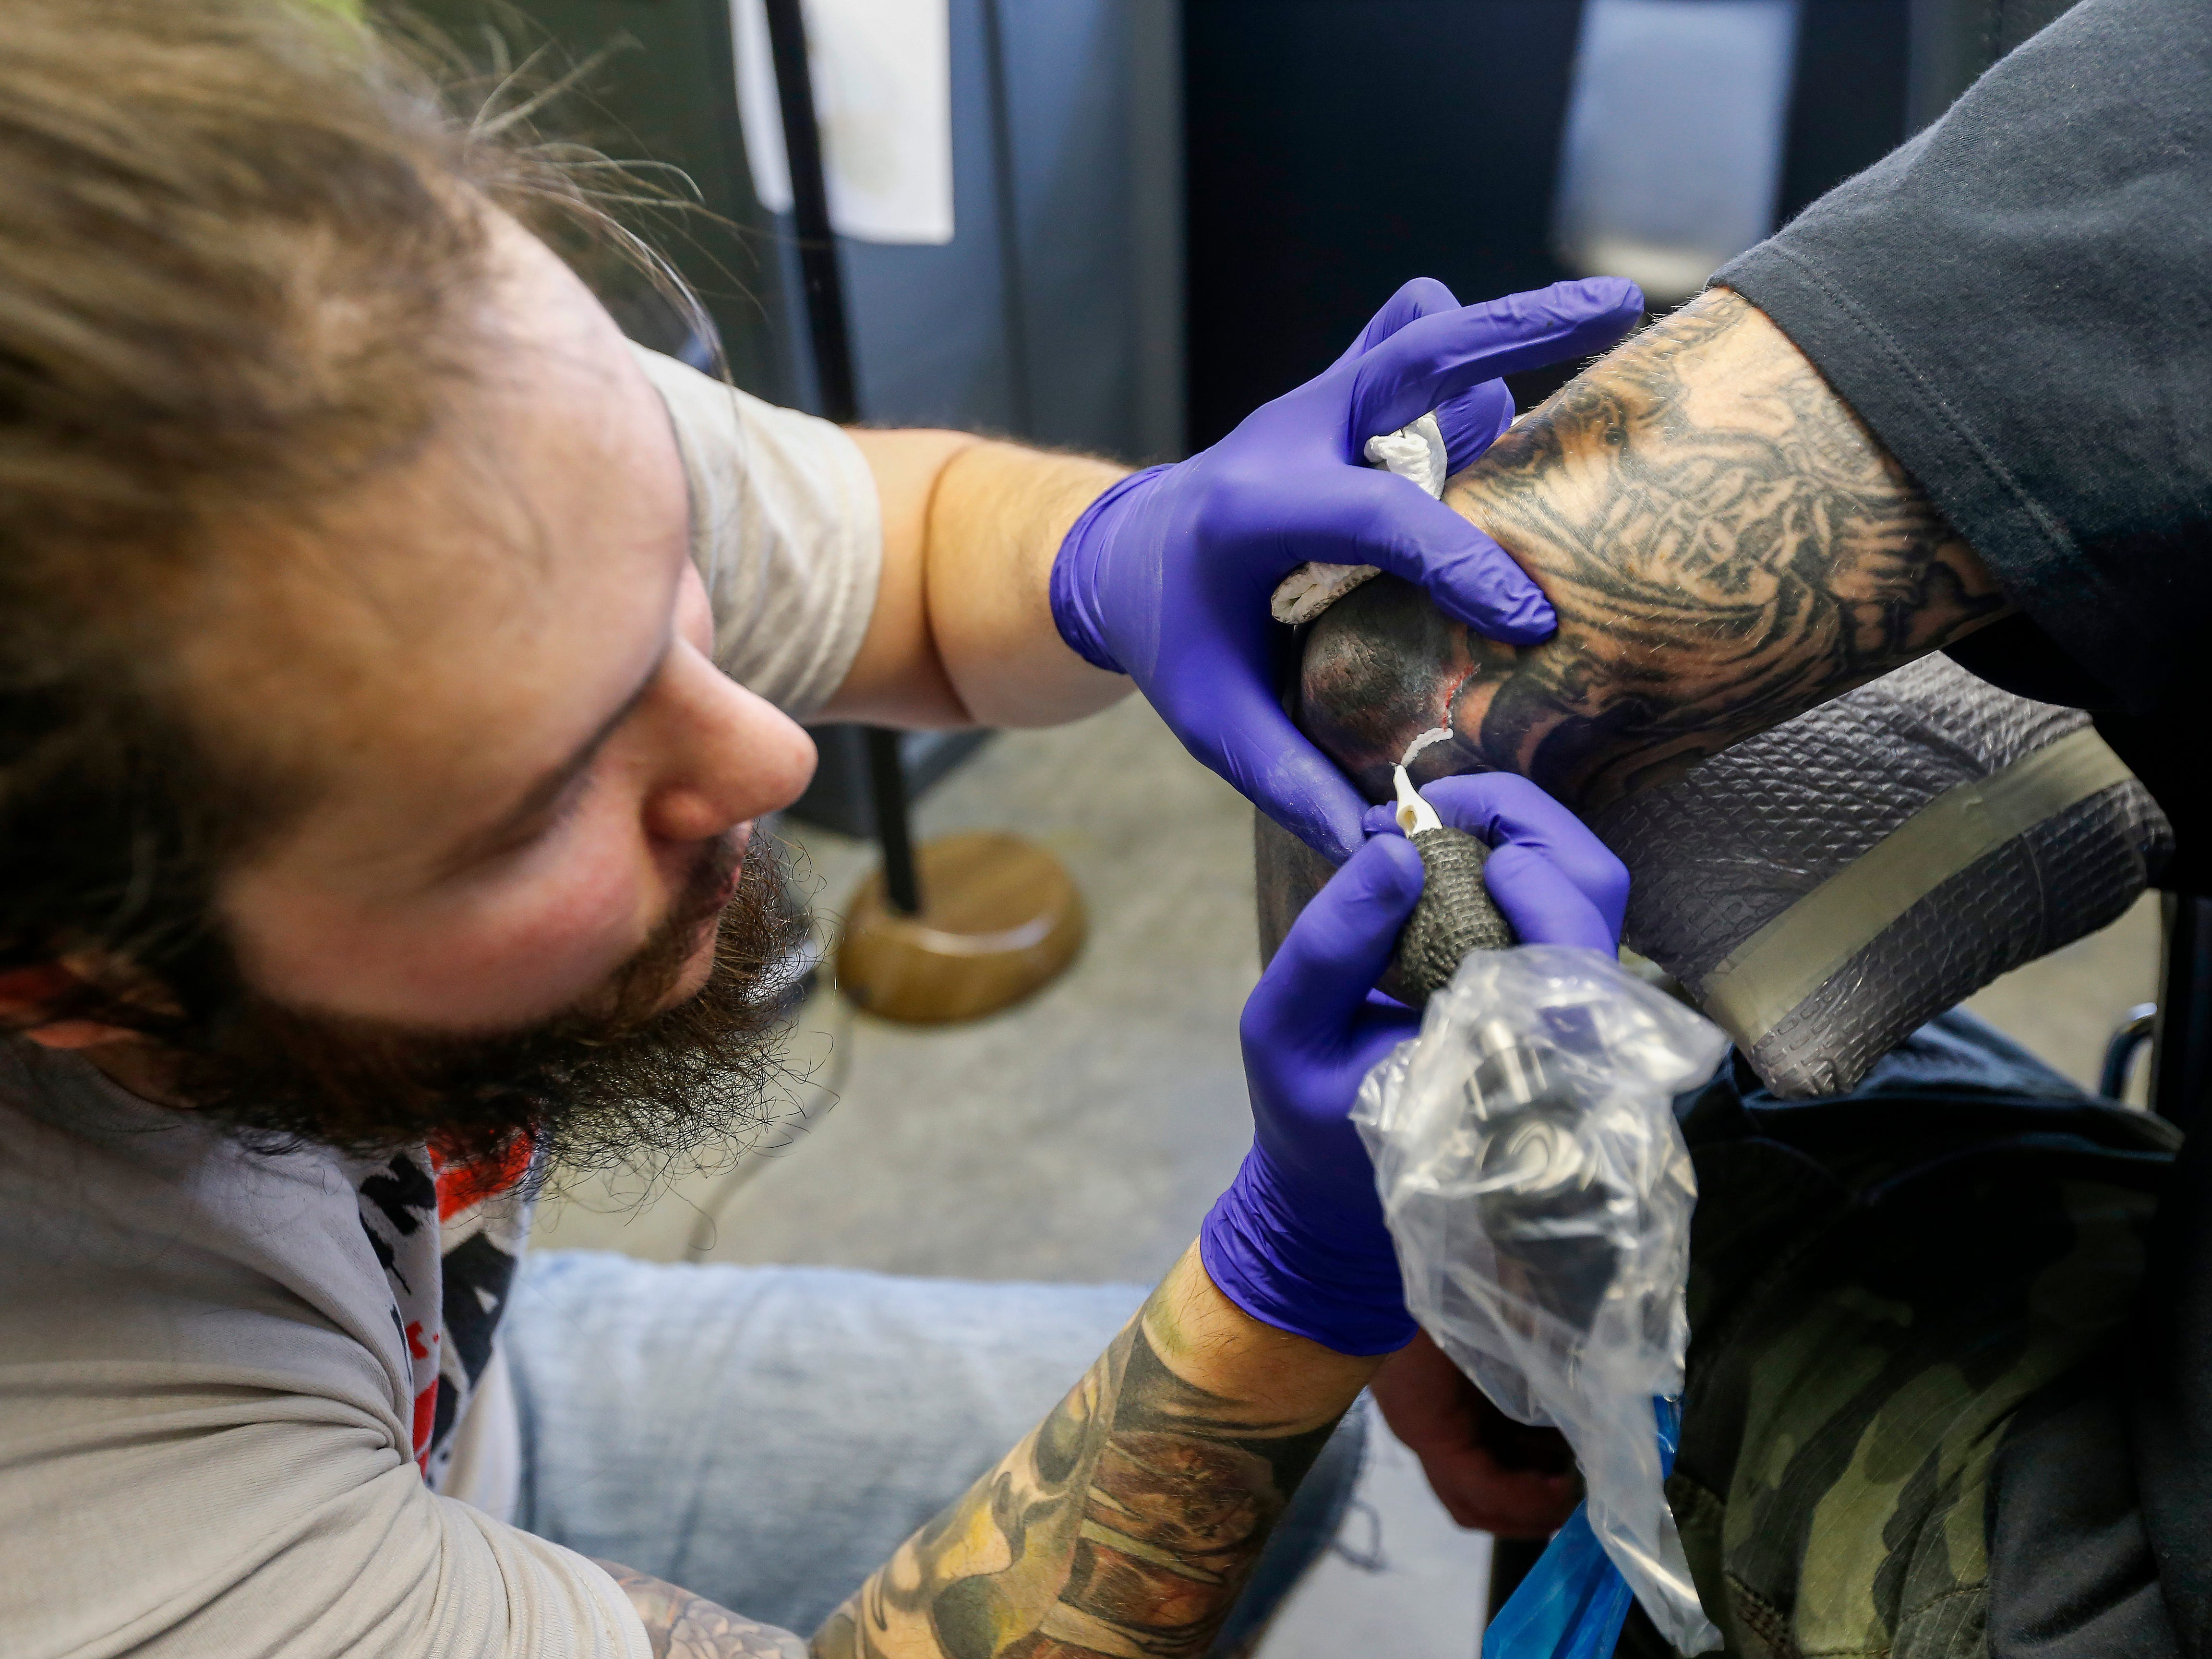 Justin Fleetwood, a tattoo artist at Queen City Tattoo Company, covers up a swastika tattoo on the elbow of a man who wished not to be identified on Tuesday, Aug. 21, 2018. Fleetwood is offering to cover up people's hate-tattoos at no cost.